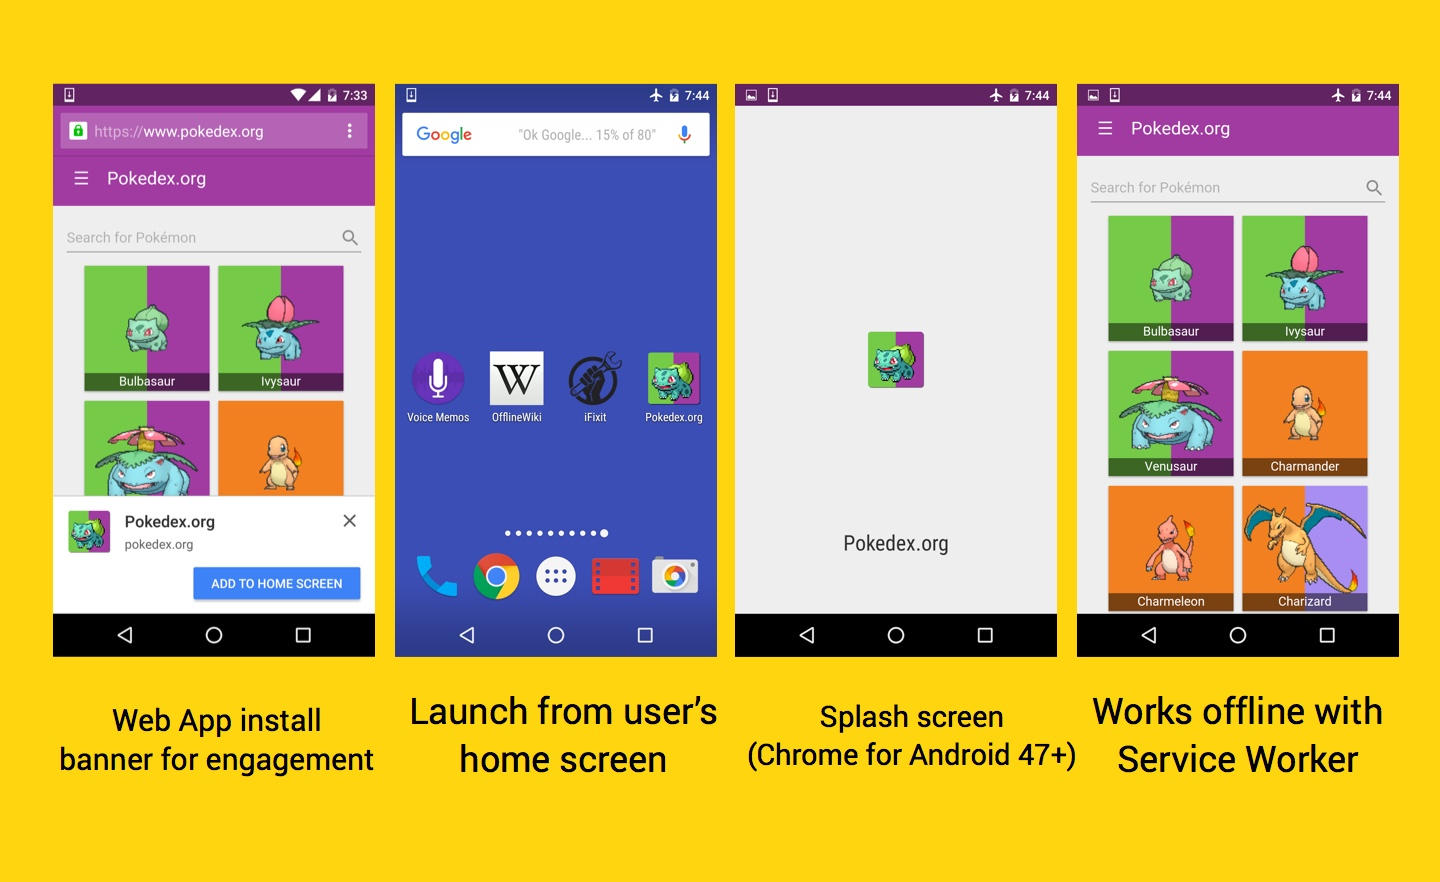 Web app install banners for engagement, launch from the user's homescreen, splash screen in Chrome for Android, works offline with Service Worker